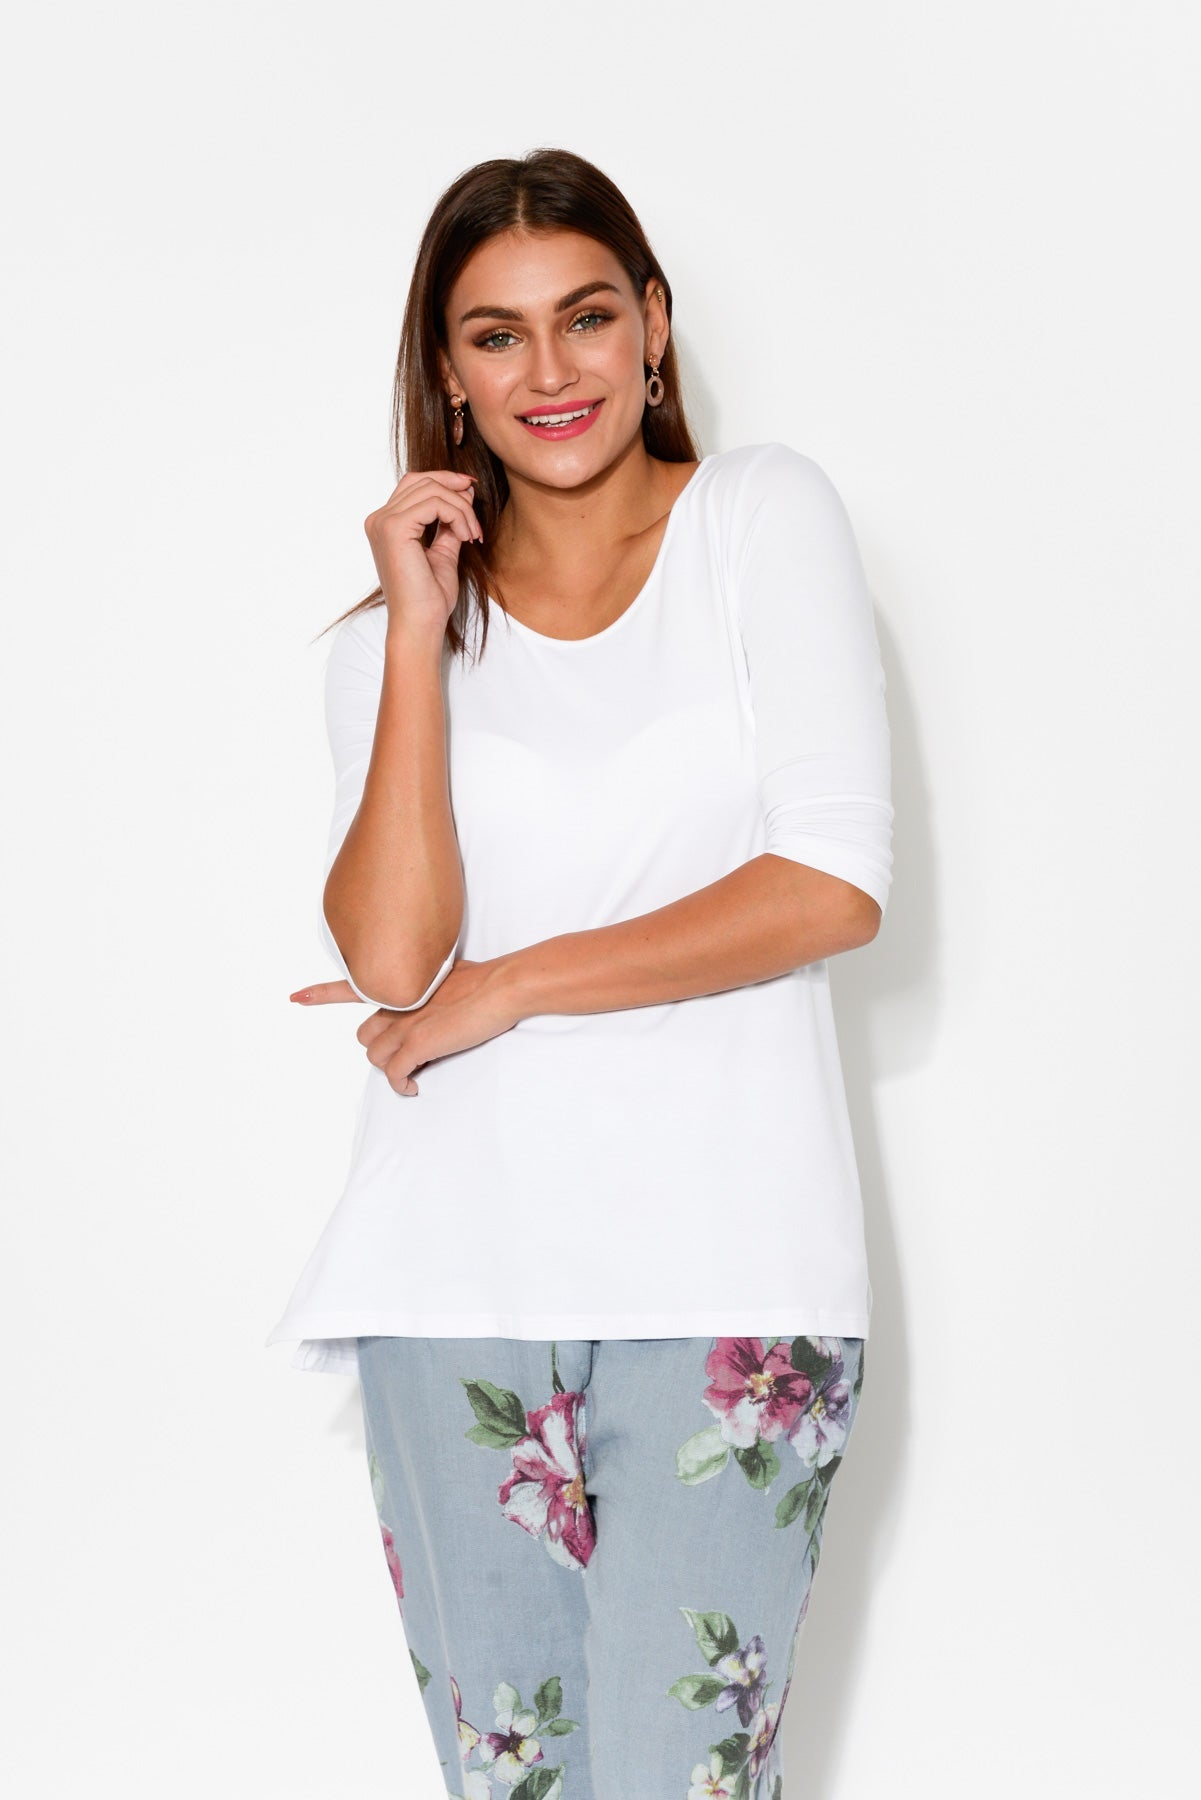 Tropez White Bamboo Top - Blue Bungalow